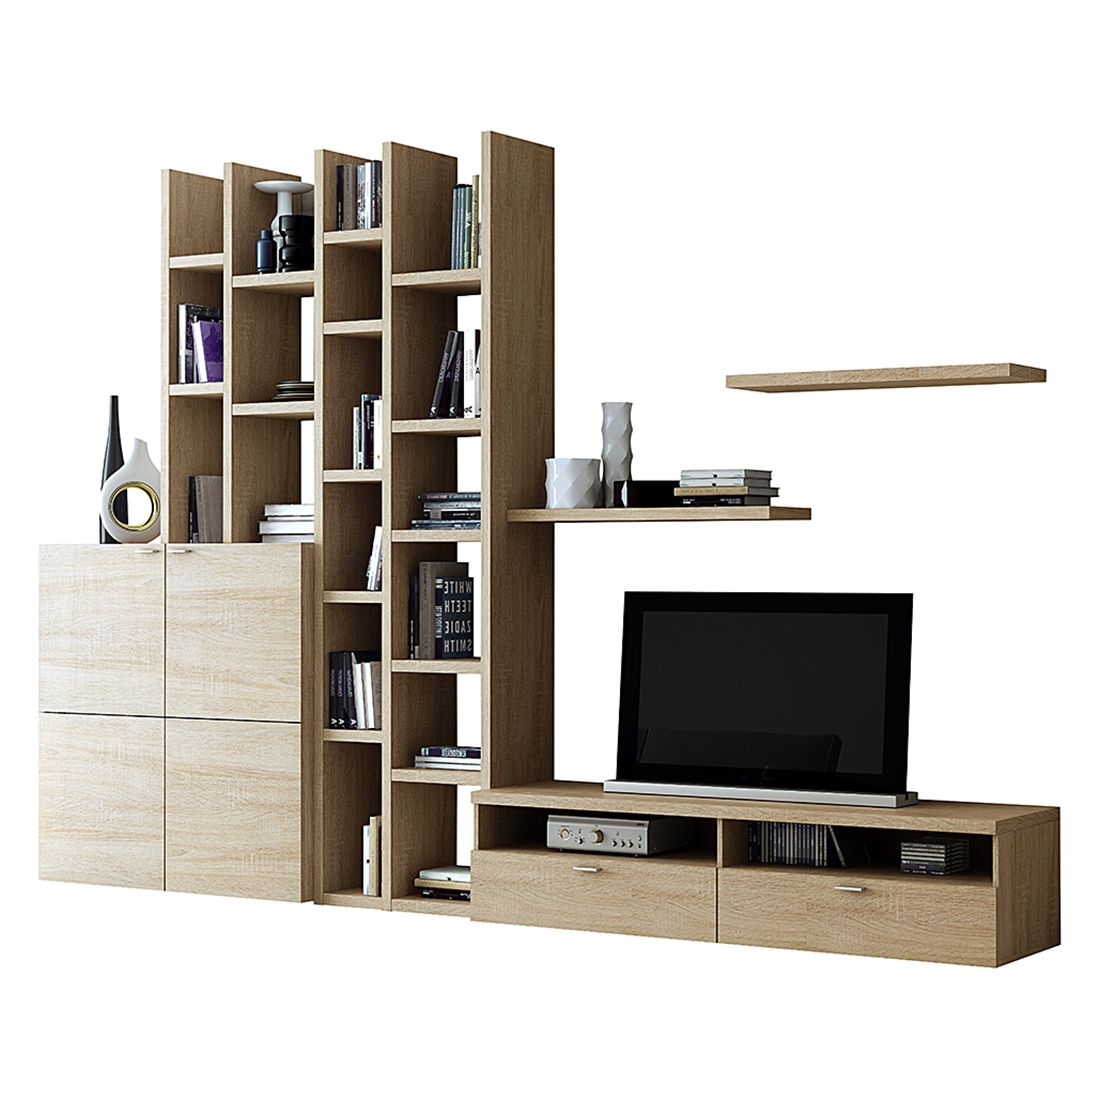 wohnwand emporior i sonoma eiche dekor. Black Bedroom Furniture Sets. Home Design Ideas